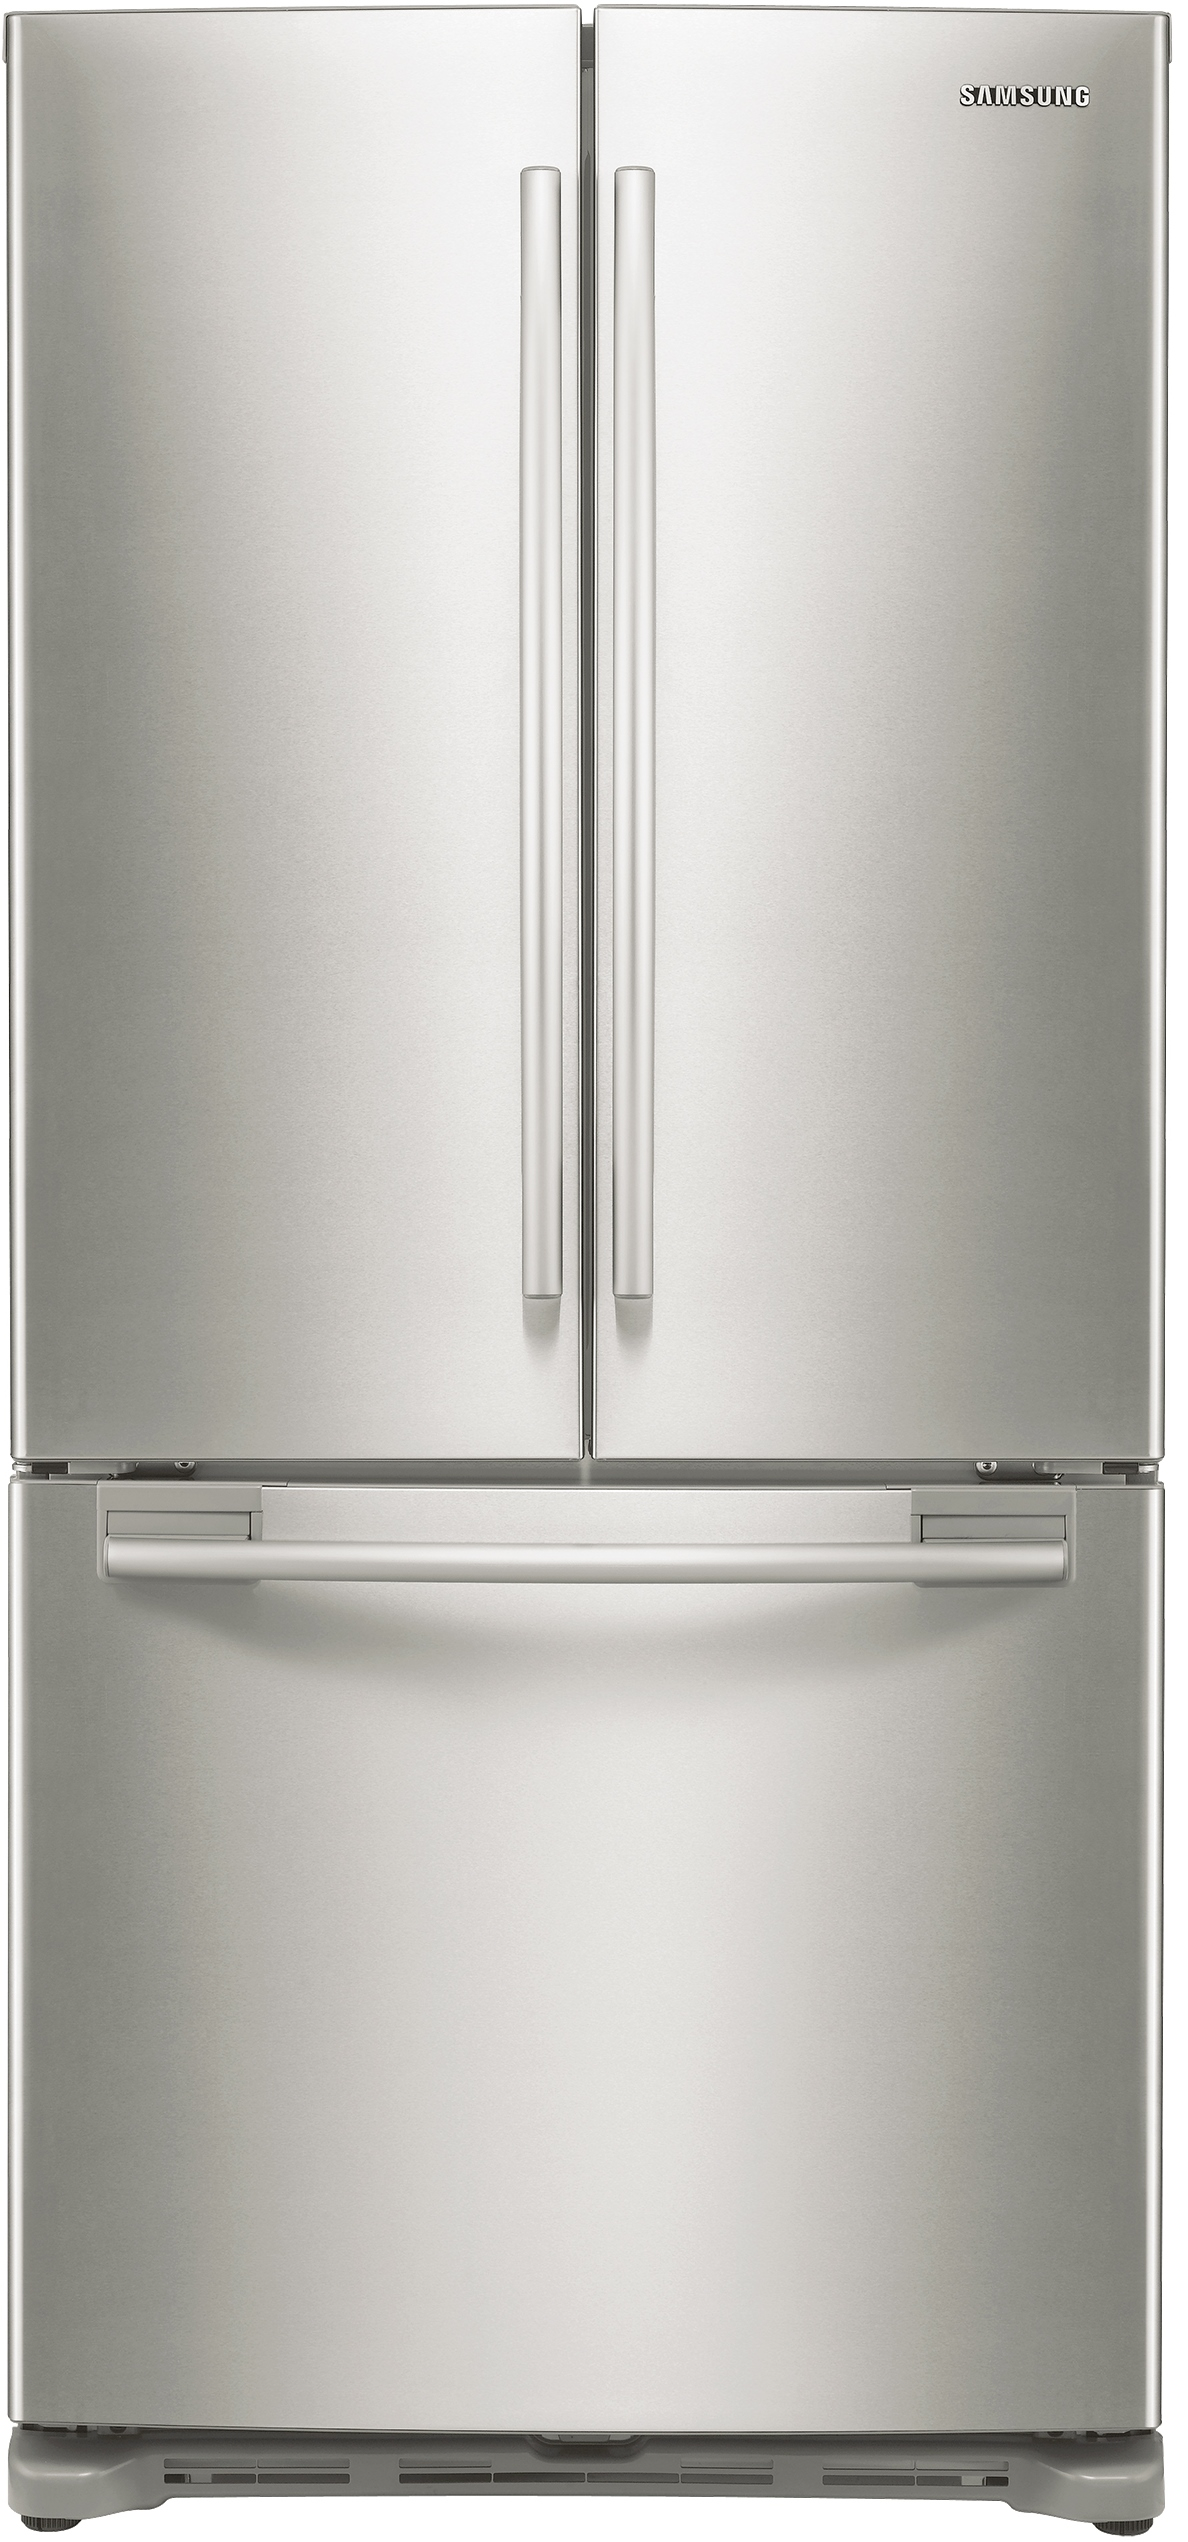 Samsung RF18HFENBSR 18 cu. ft. Capacity Counter Depth French Door Refrigerator Stainless Steel